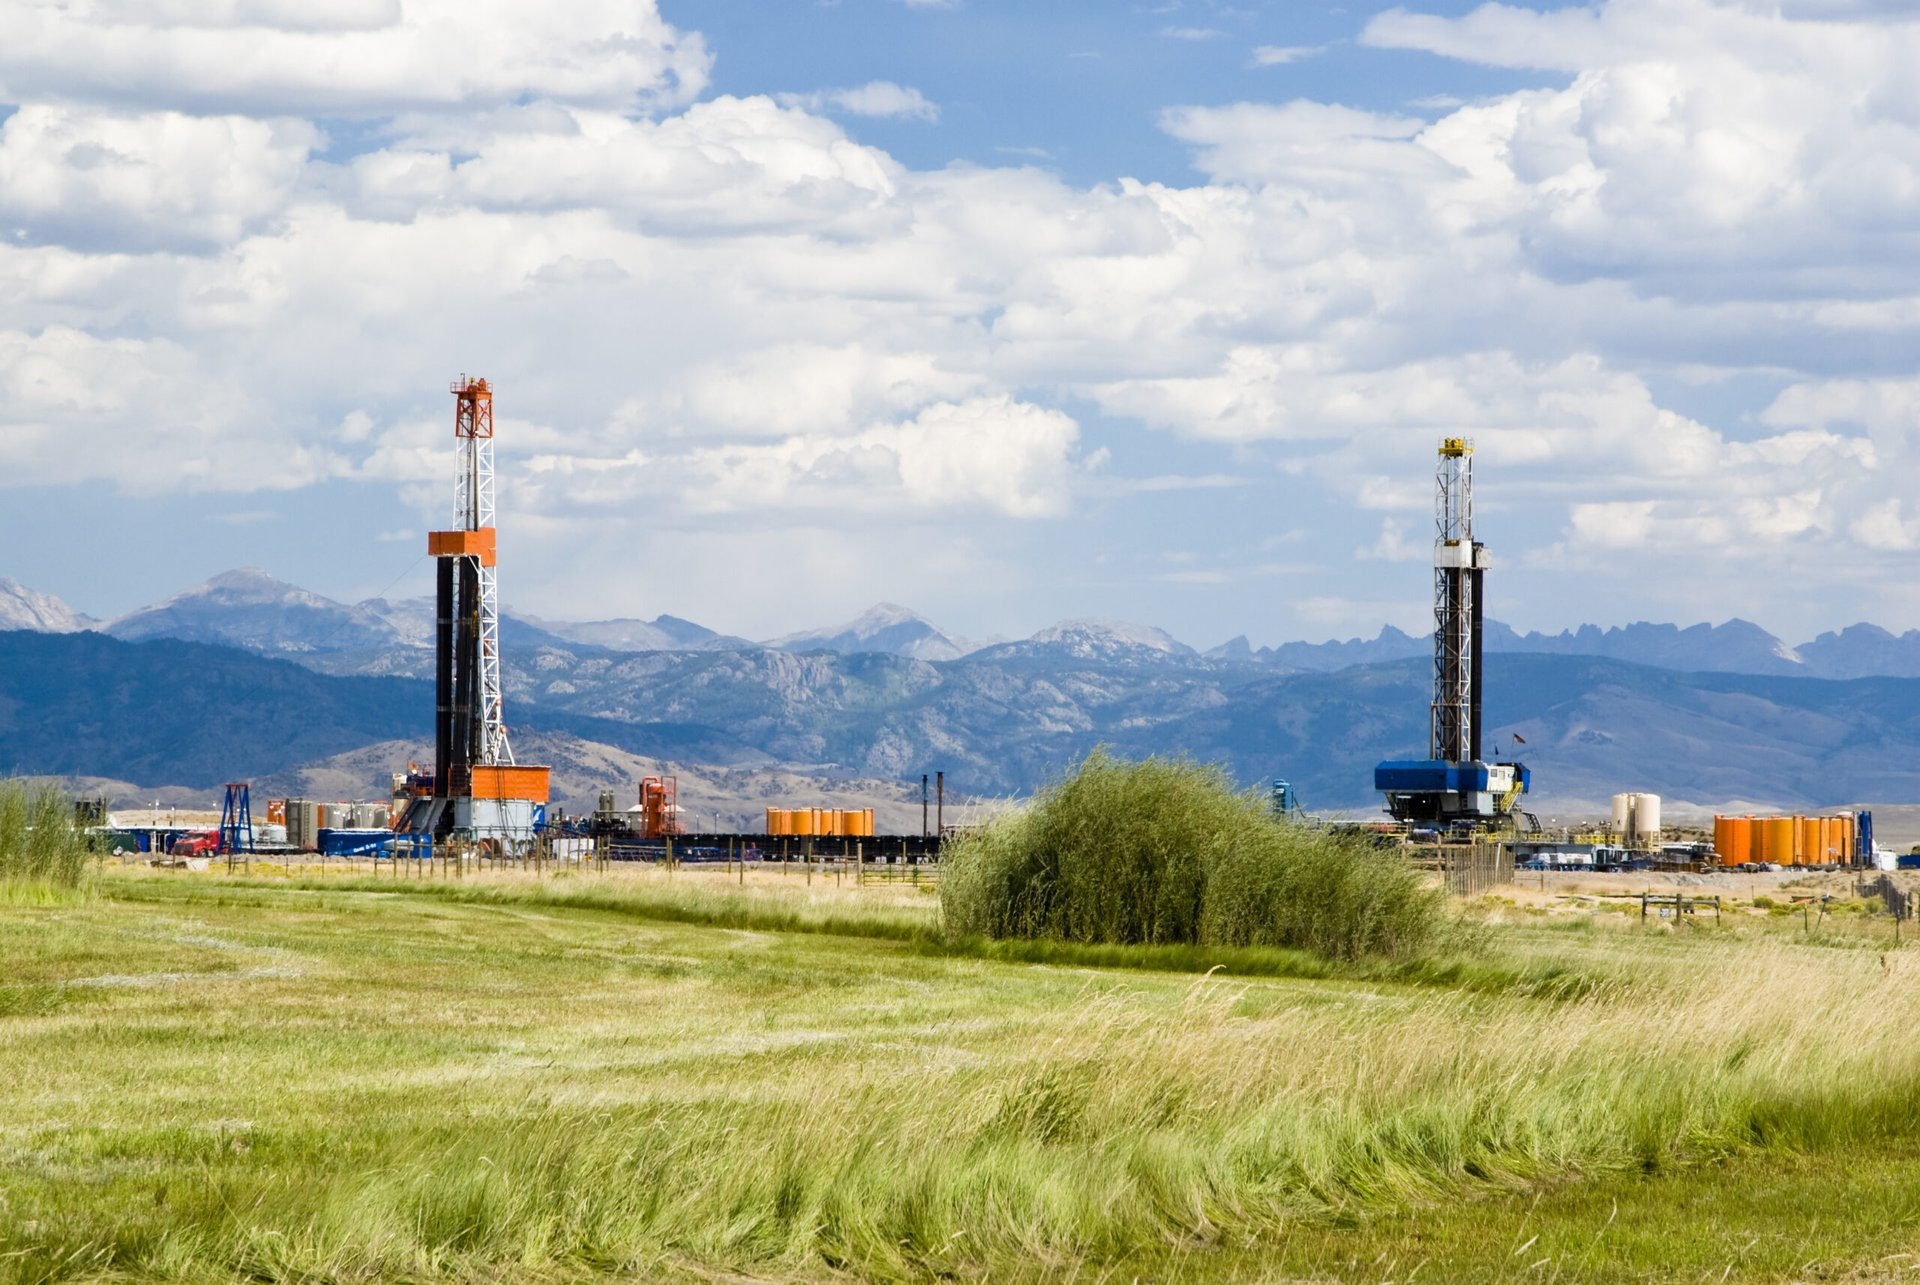 Wyoming oil rigs